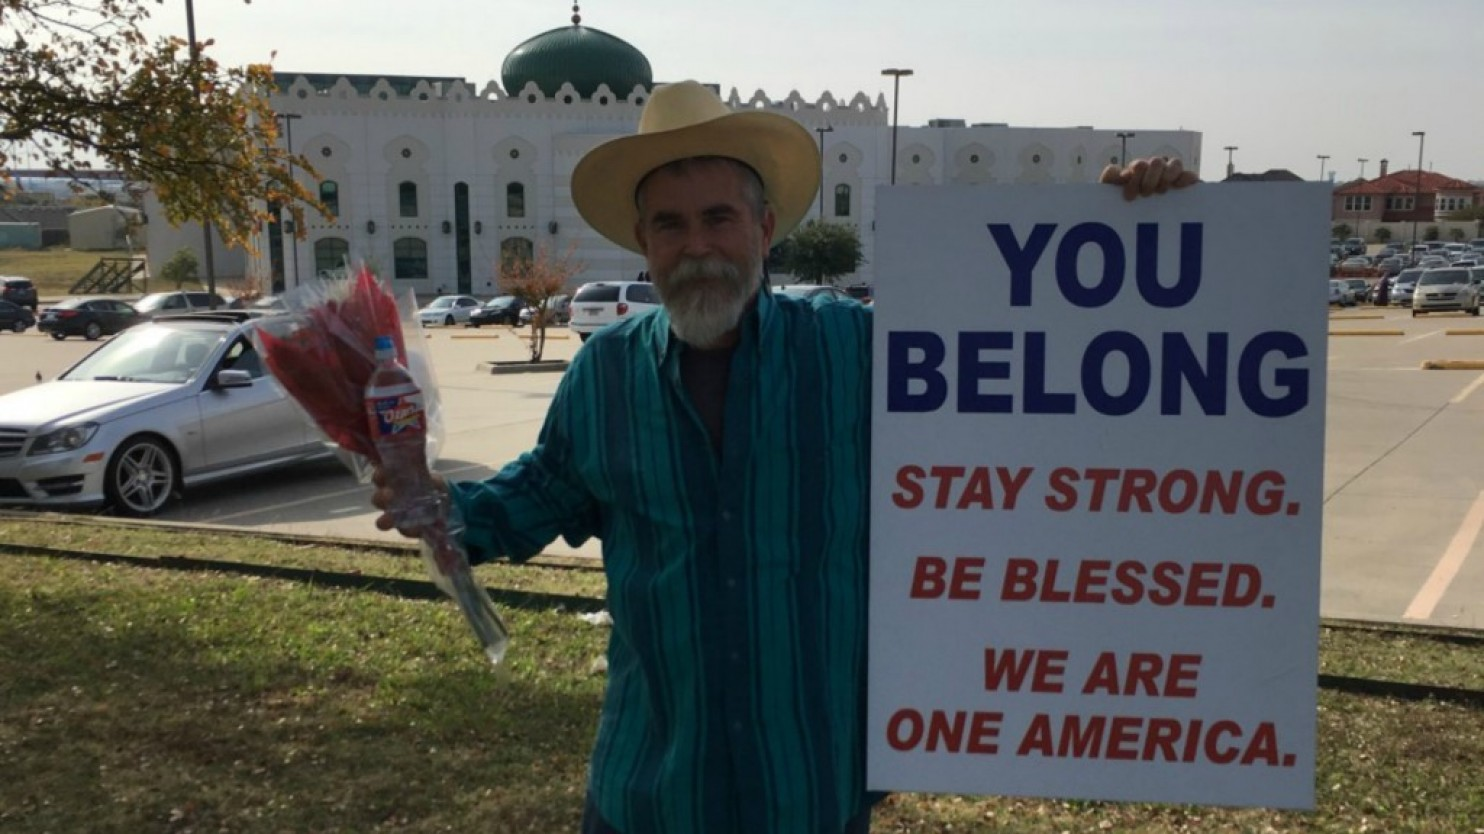 justin-normand-you-belong-stay-strong-be-blessed-we-are-one-america